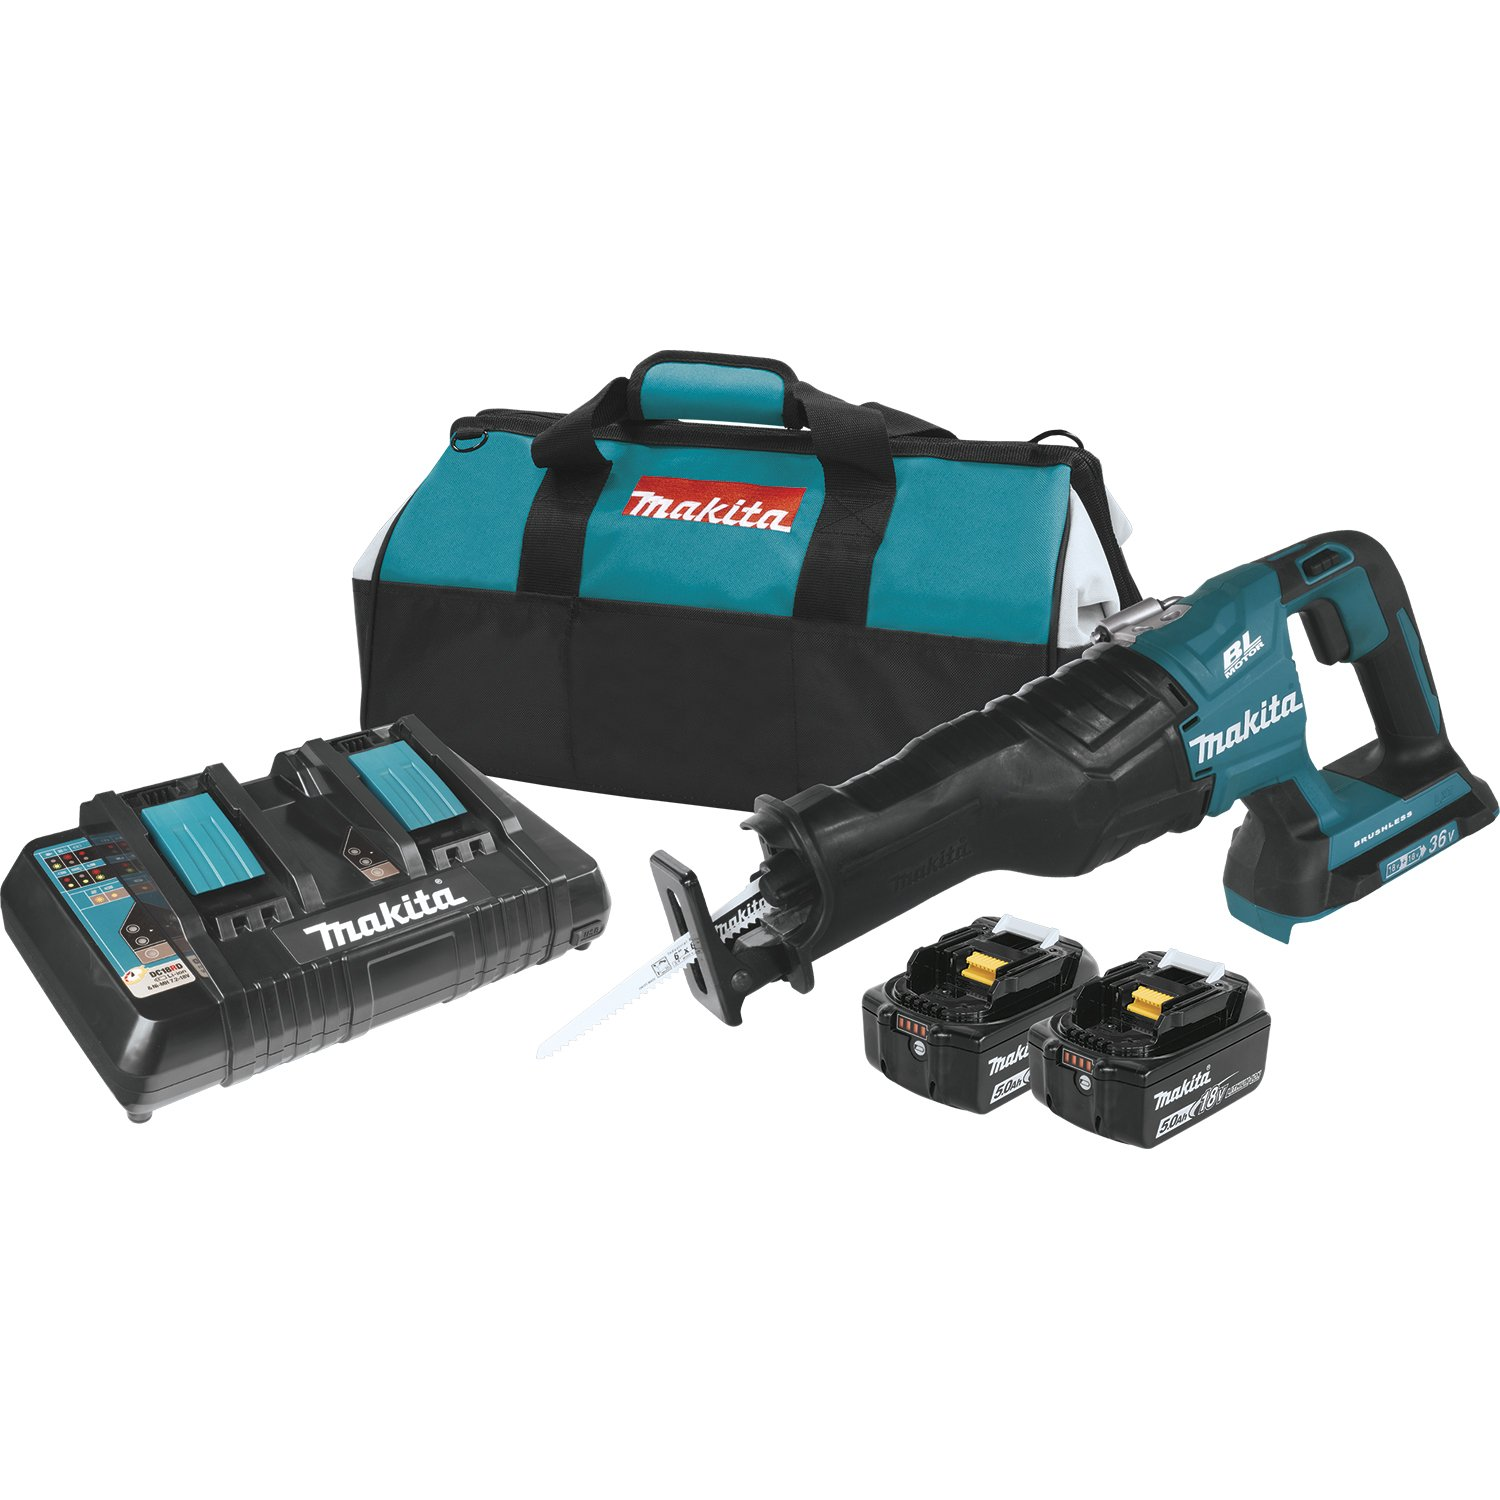 Makita XRJ06PT 18V x2 LXT Lithium-Ion (36V) Brushless Cordless Recipro Saw Kit (5.0Ah)